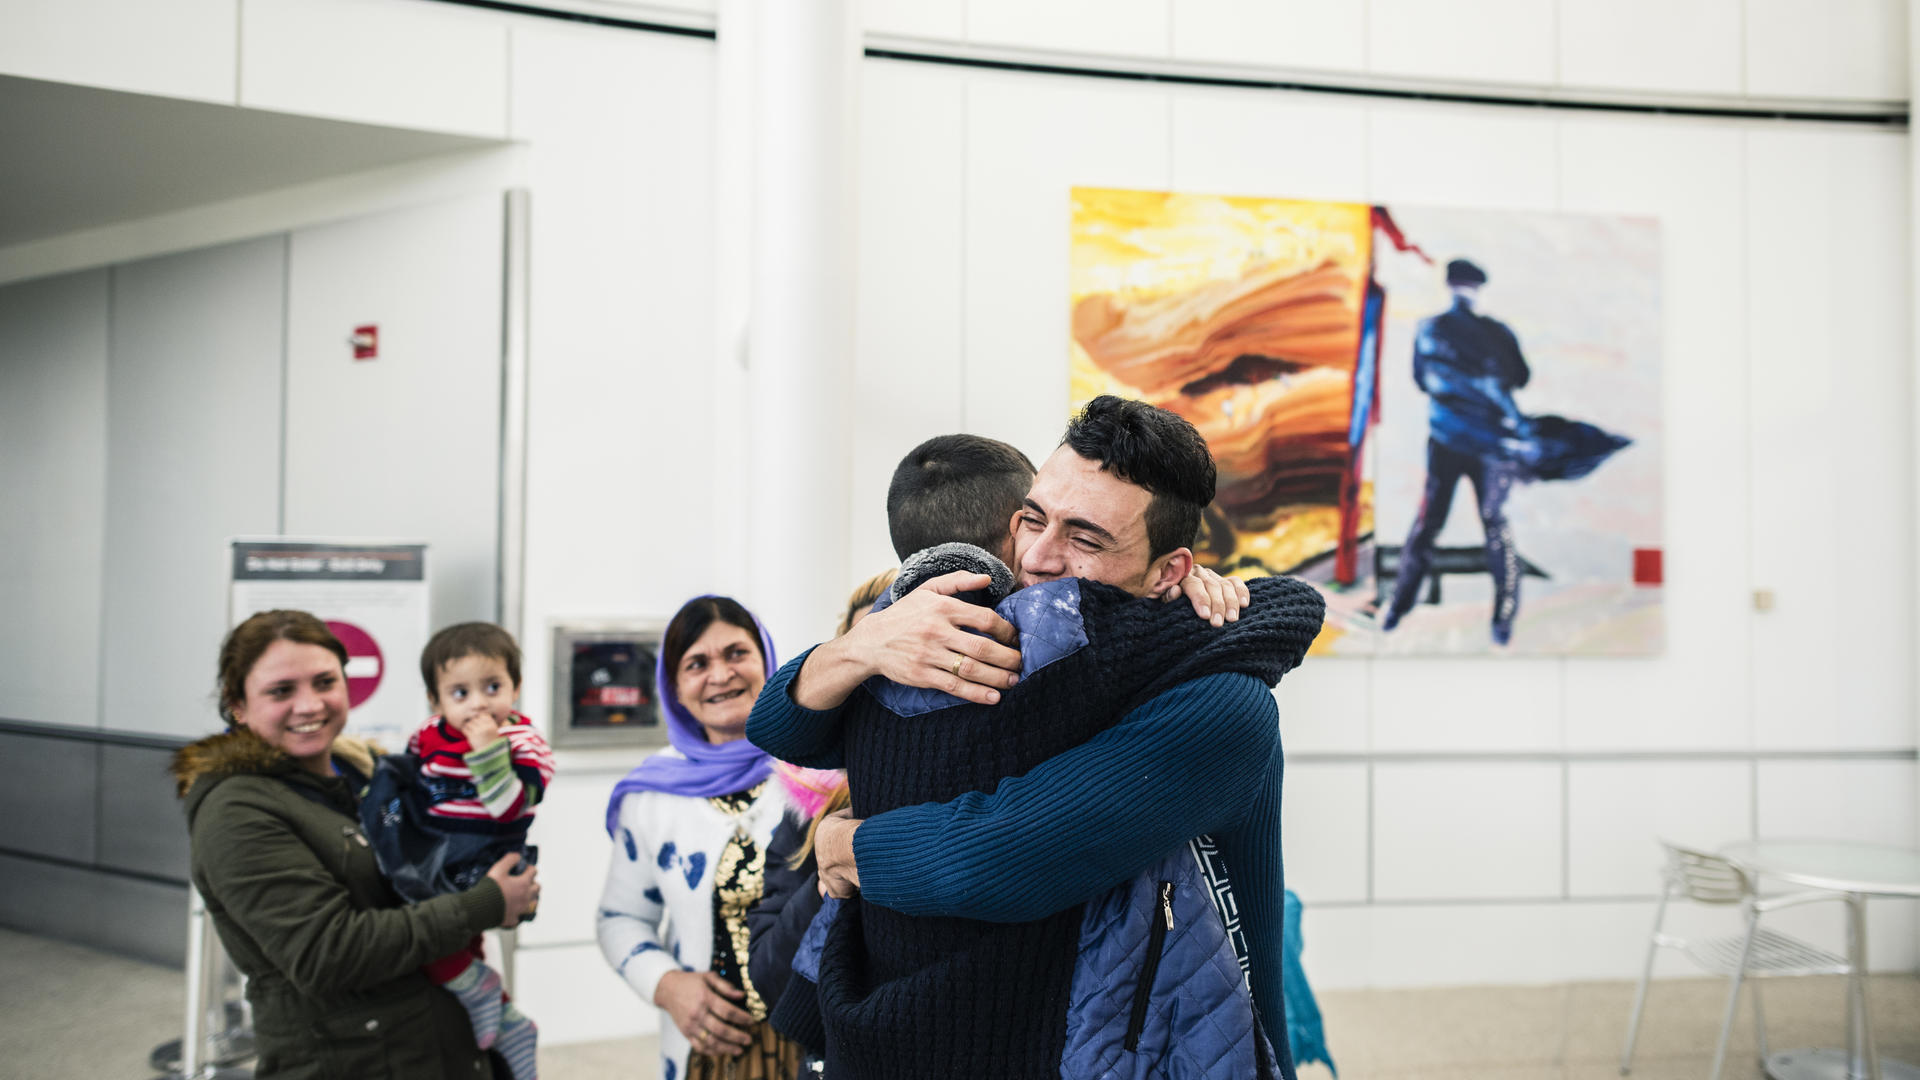 Adil Nimr, a refugee from Iraq who escaped ISIS, was reunited with 13 family members in Seattle on Feb. 10 after President Trump's travel ban was blocked.